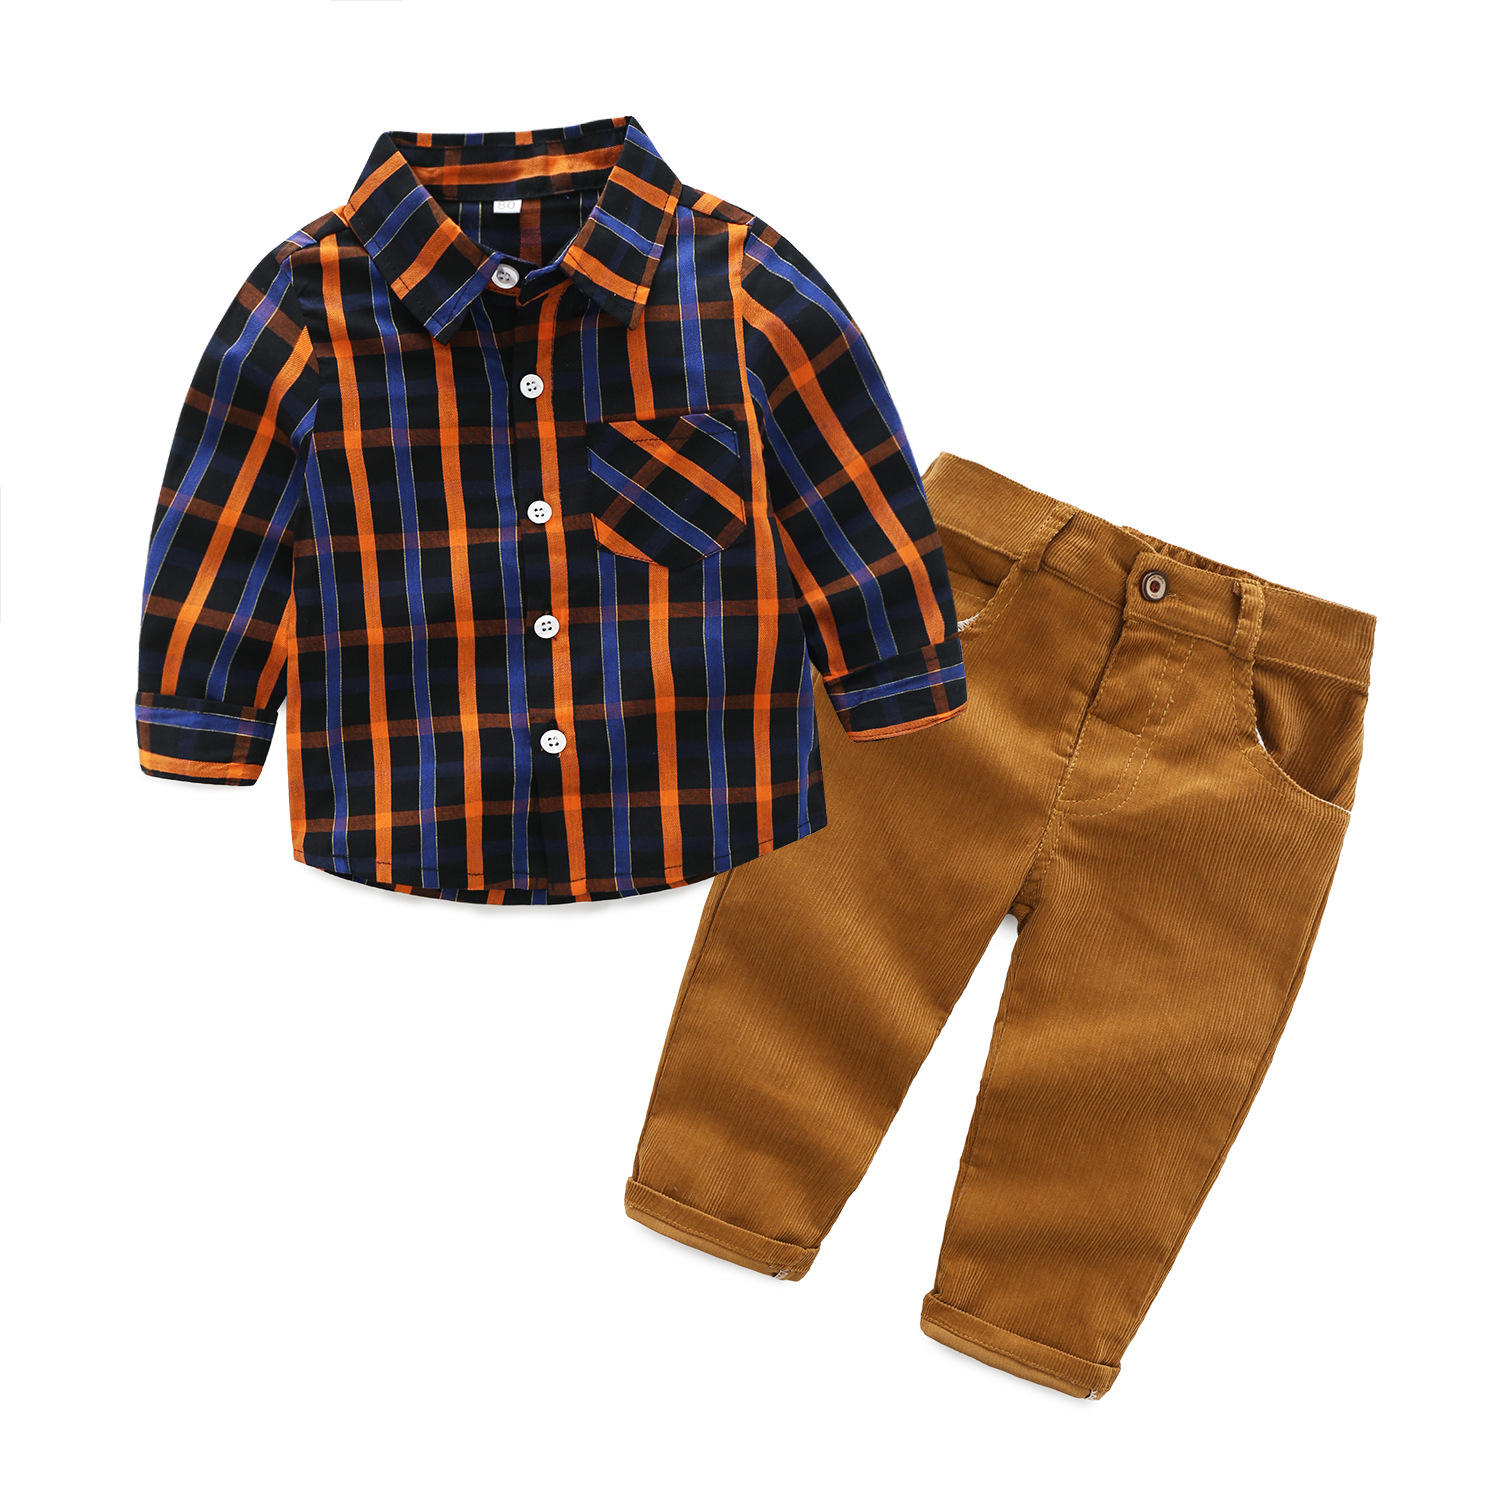 Children's Clothing Suit Male Baby Plaid Shirt Trousers Suit Spring And Autumn Long-sleeve Bright Set Formal Kids Clothes